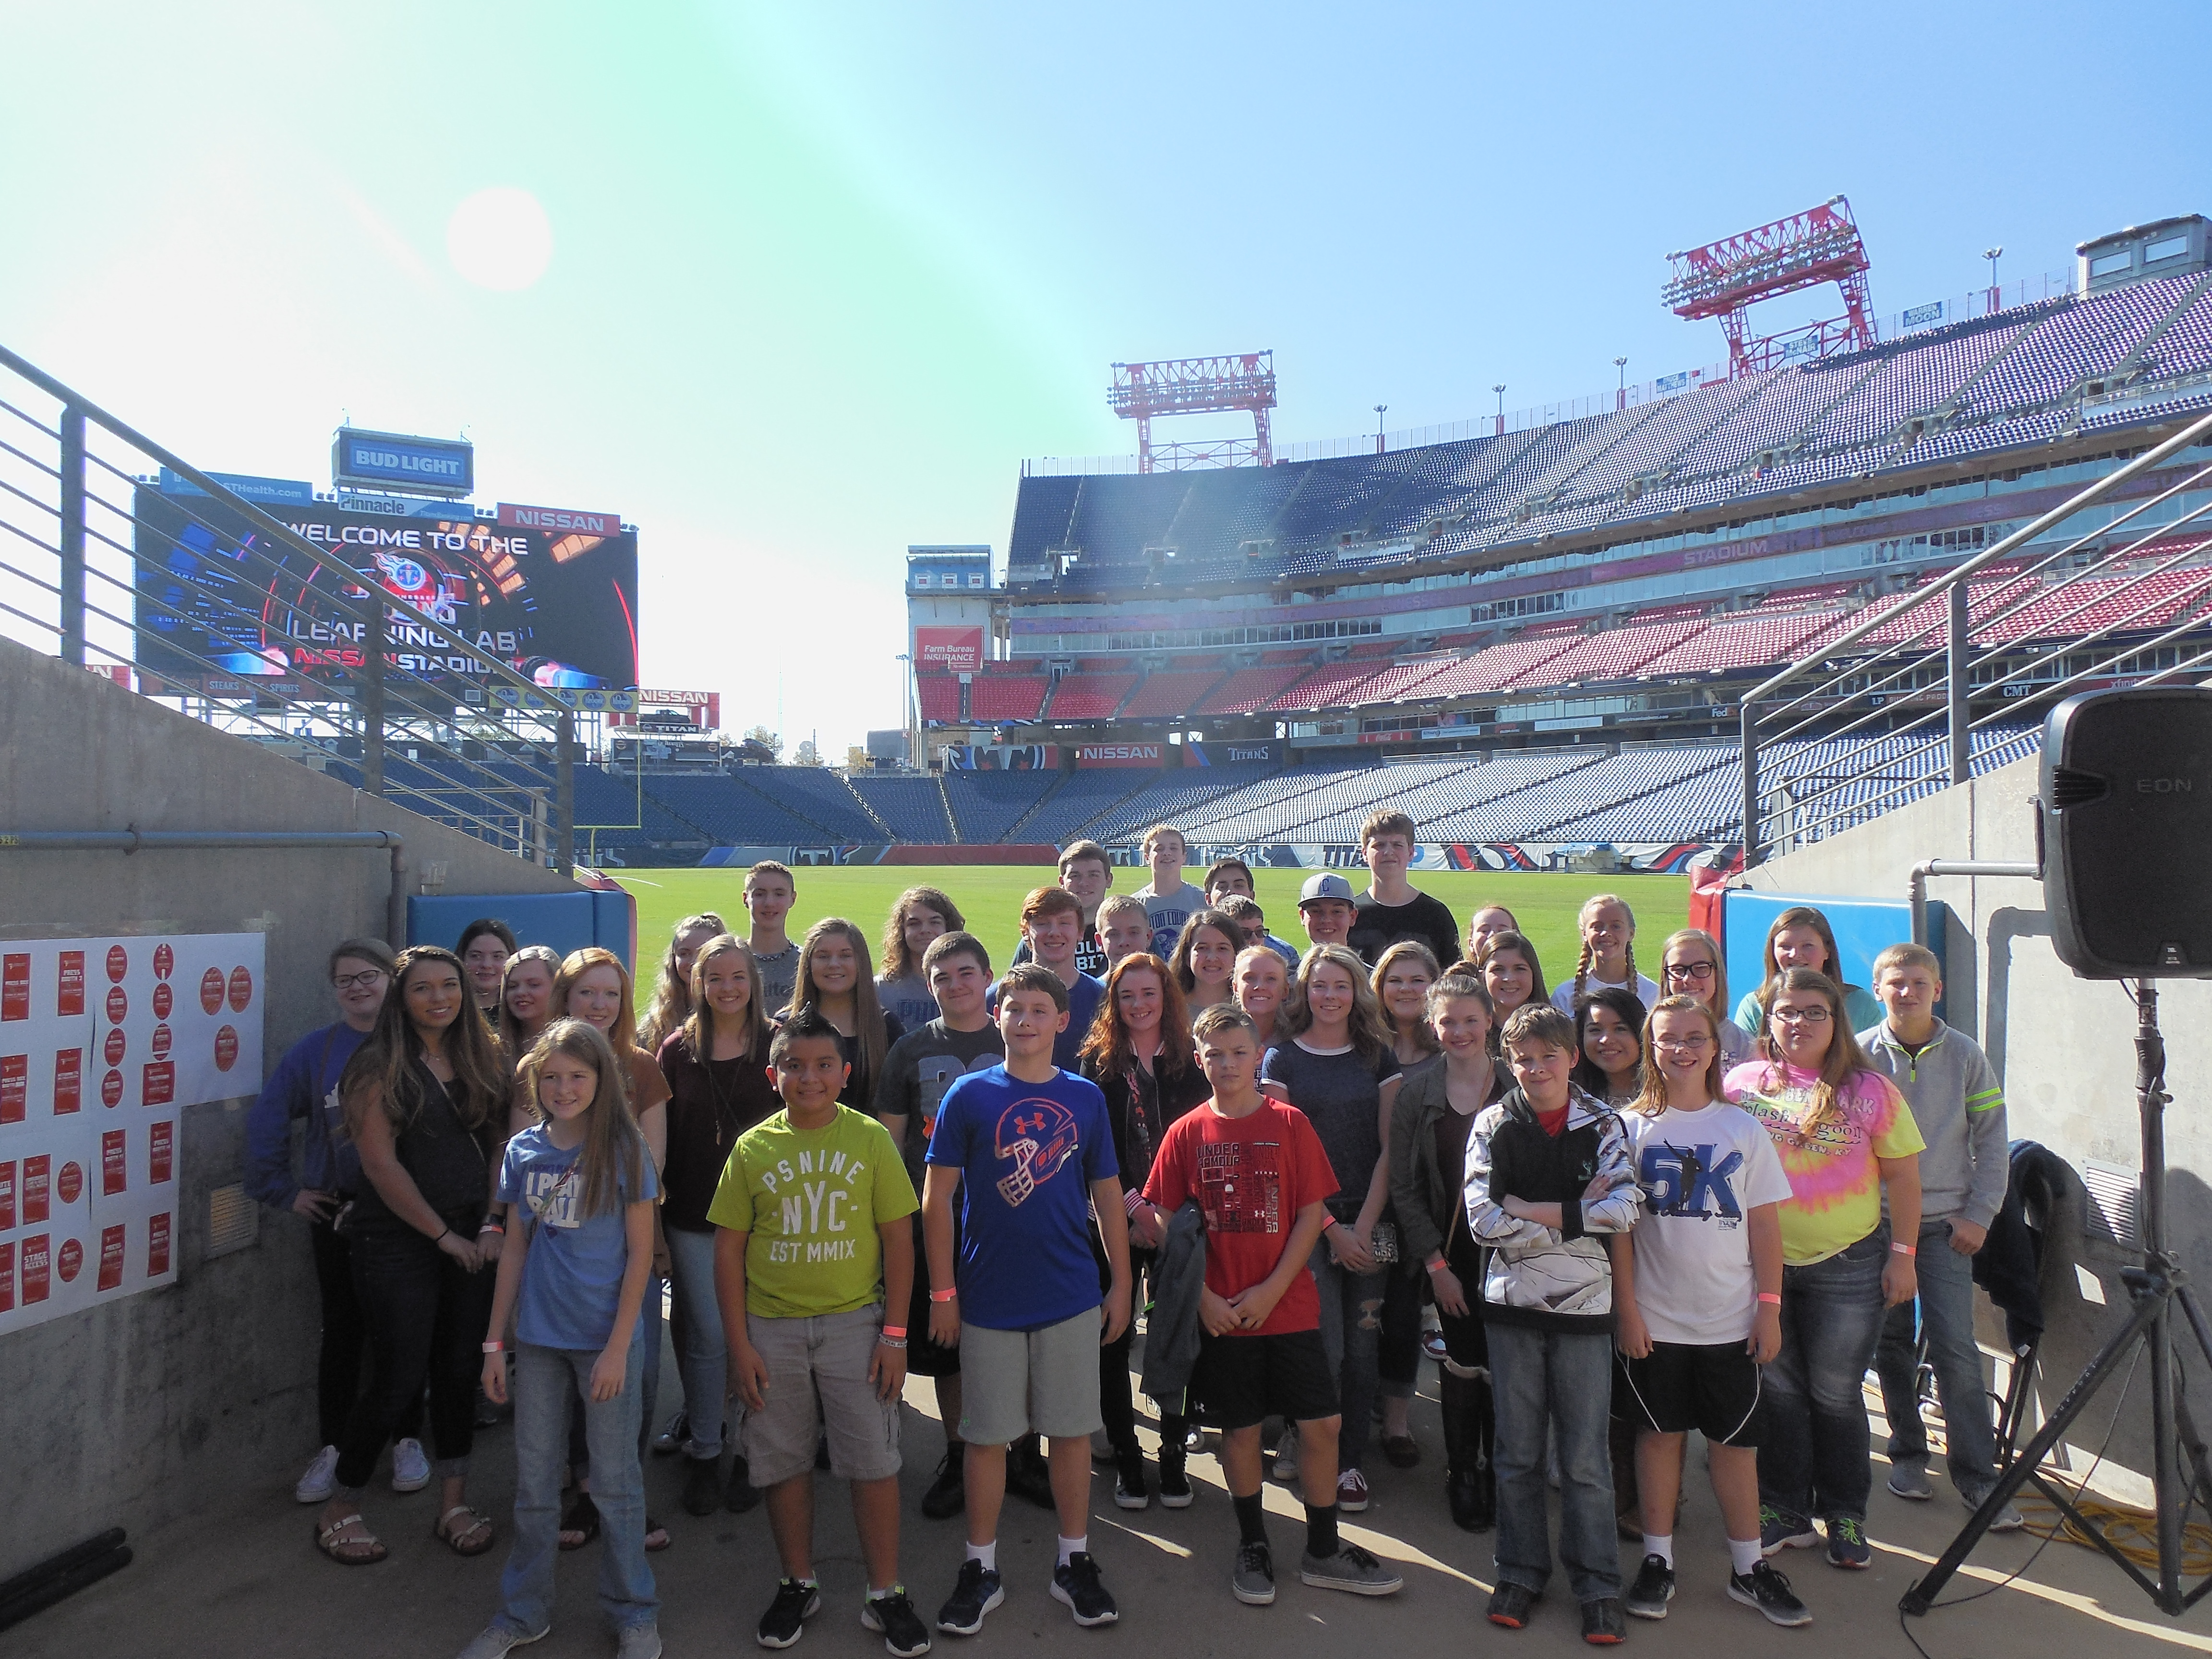 On Tuesday, November 1st, CCMS and CCHS students traveled to Nashville, Tennessee to participate in the Tennessee Titans Learning Lab.